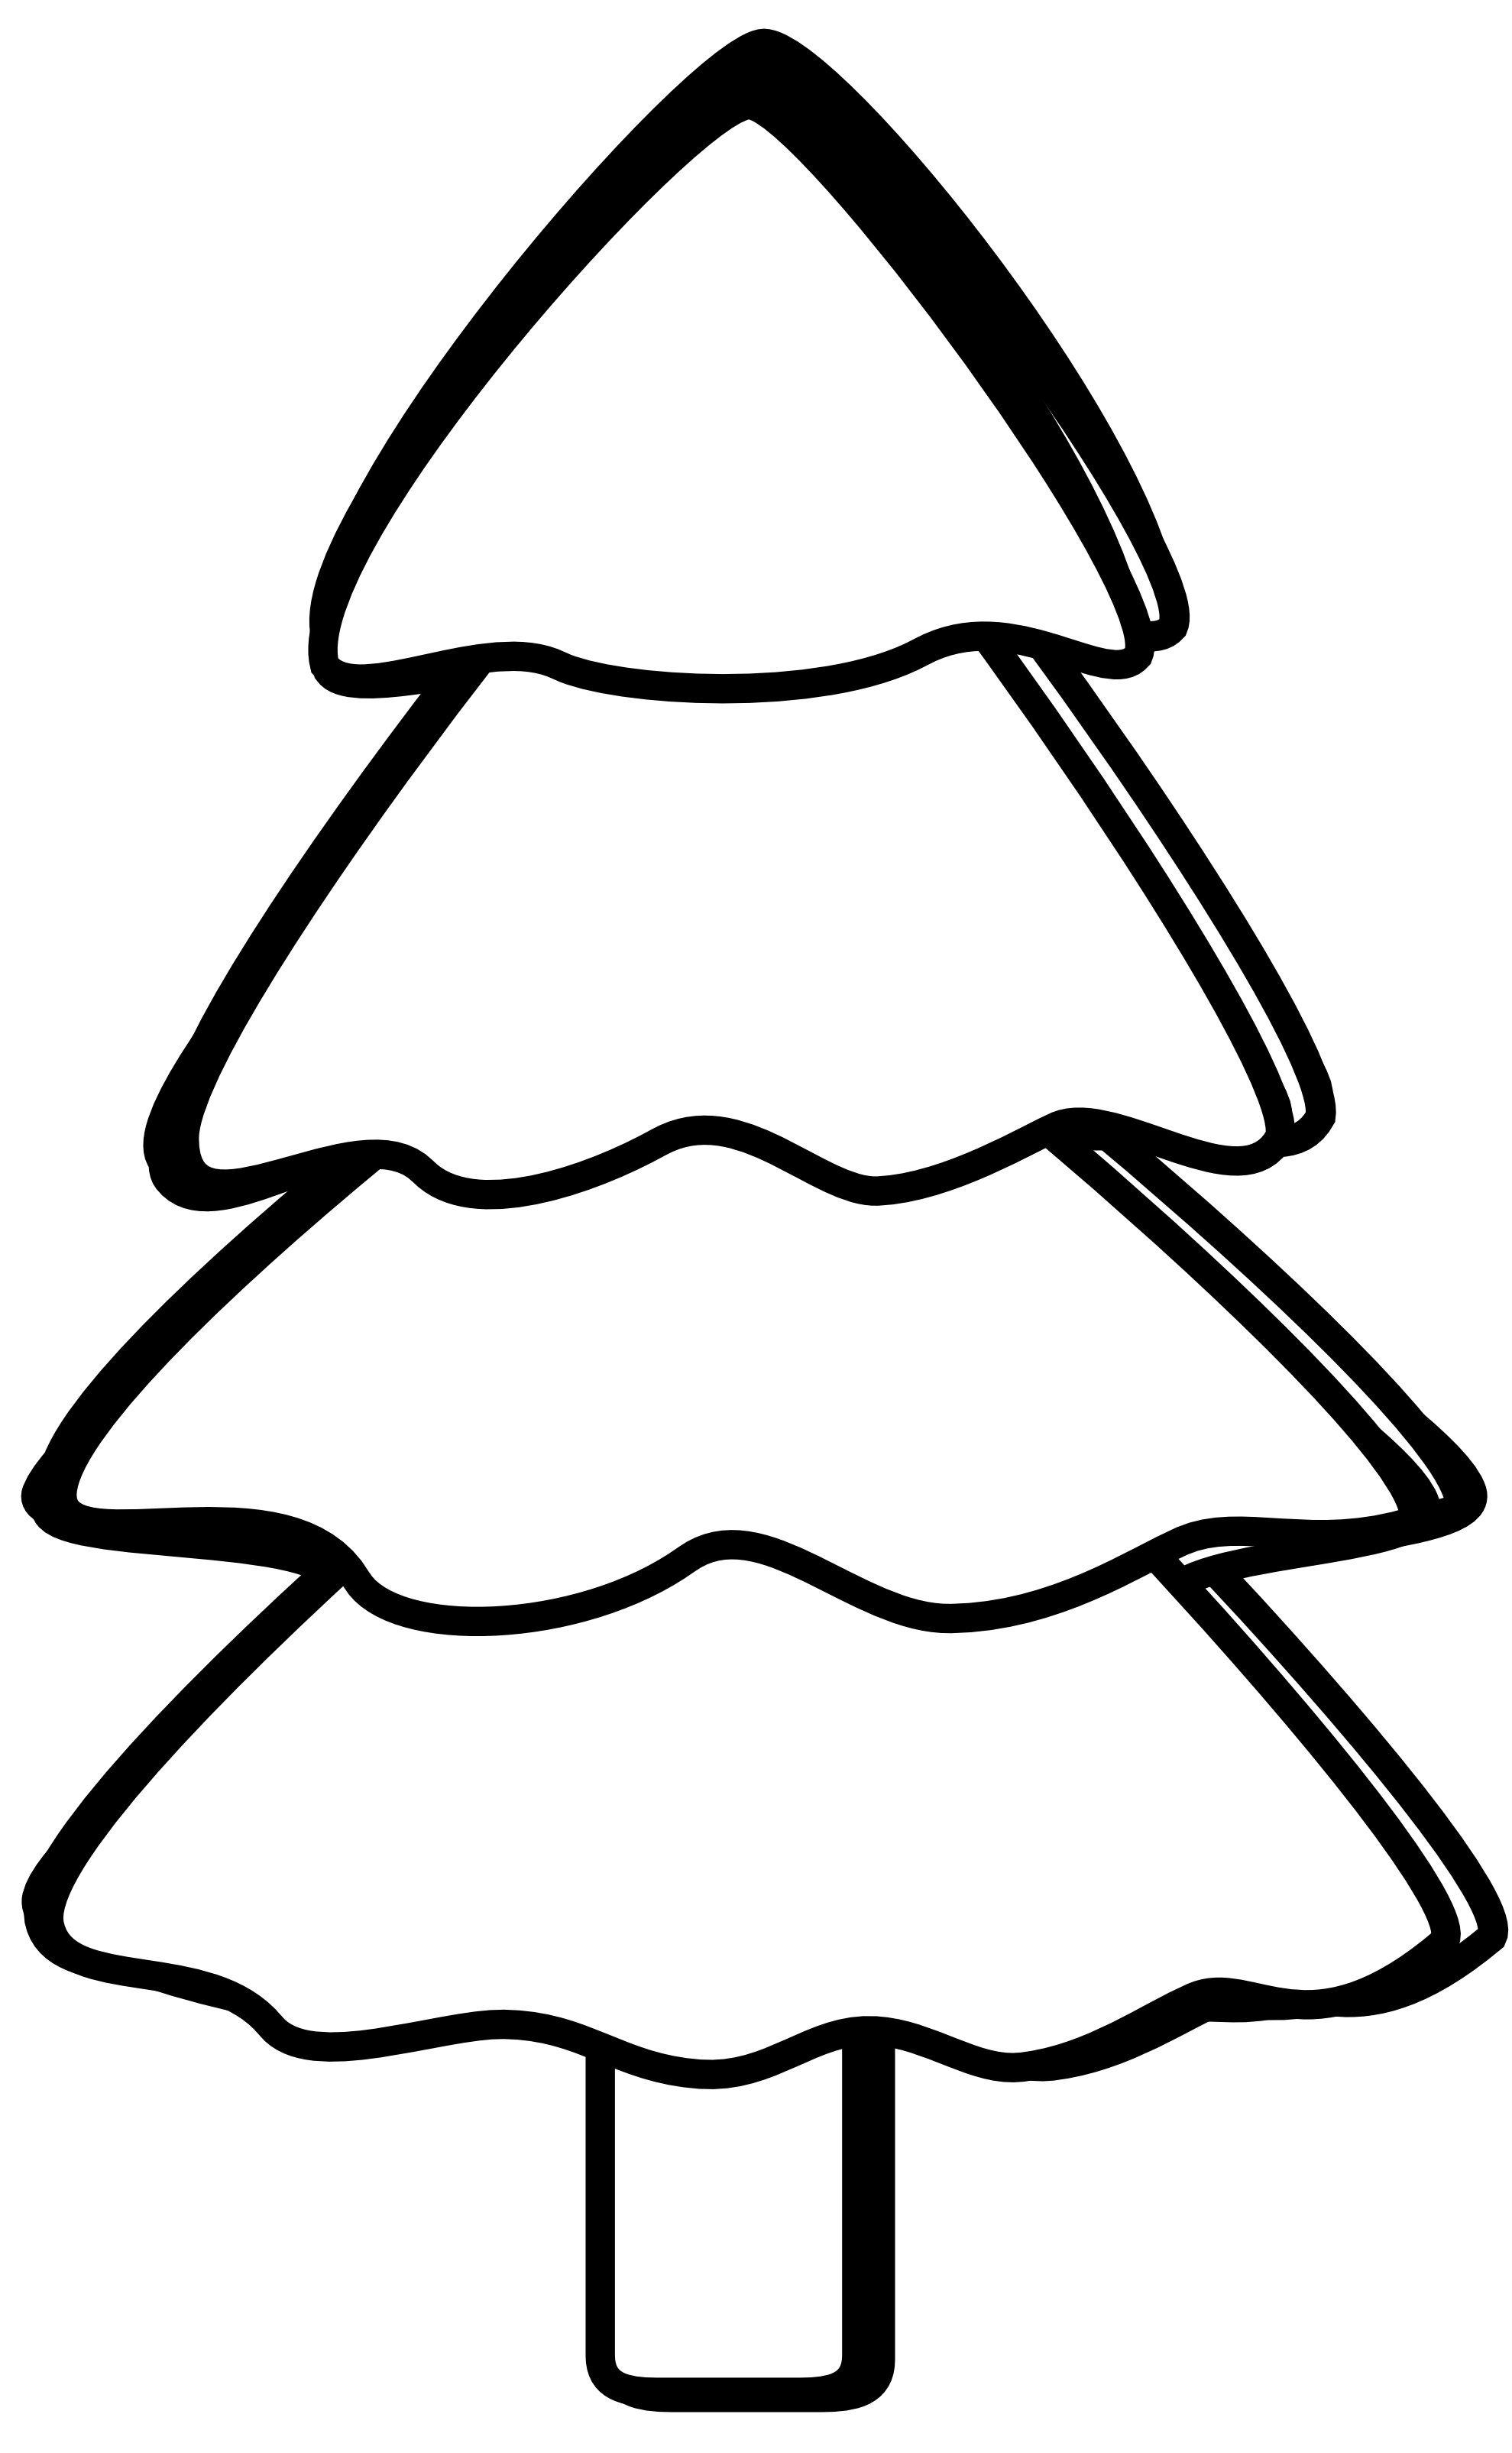 Bare Christmas Tree Clipart.Bare Tree Clipart Black And White